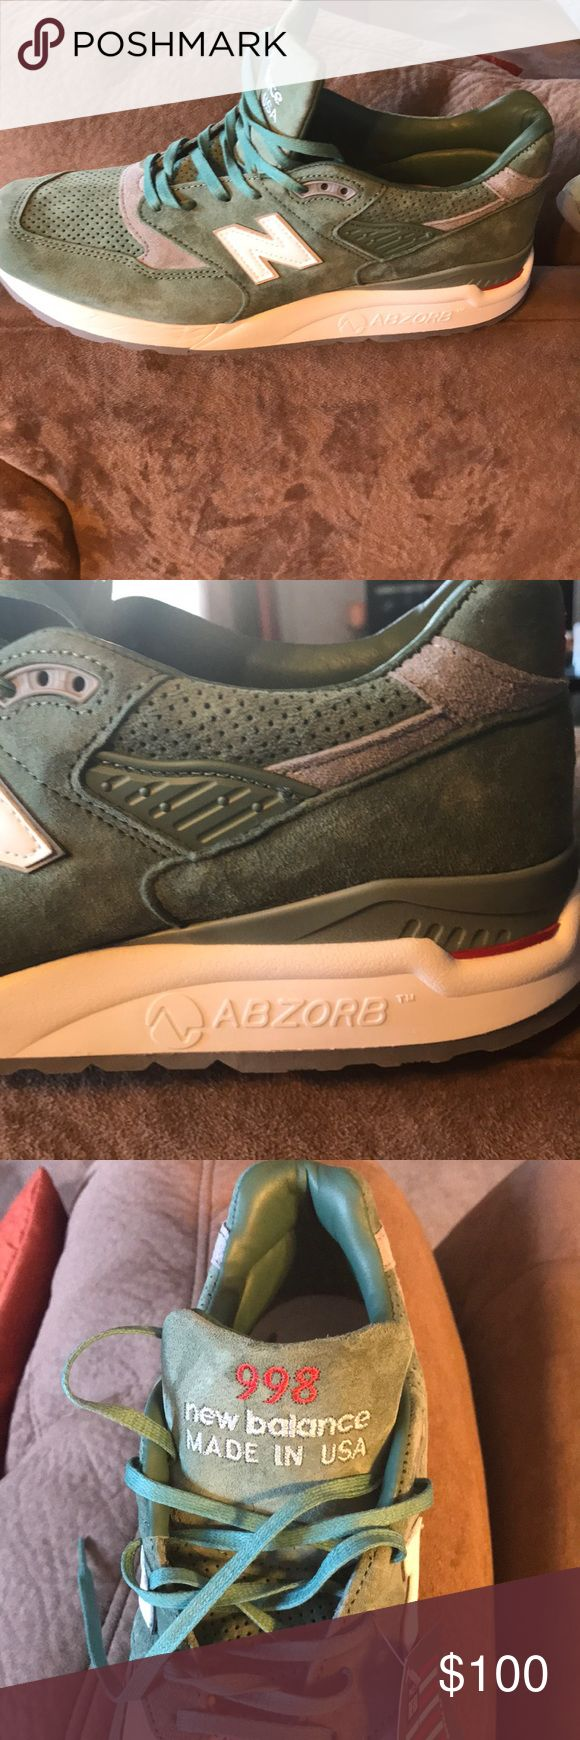 """998 New Balance """"made in USA"""" sneakers. 998 New Balance """"made in USA"""" ABZORB sneakers. Light green suede. I have sizes 10 and 1/2 and 11. Great quality sneakers. Comfortable and durable.$100 or best offer. New Balance Shoes Sneakers"""